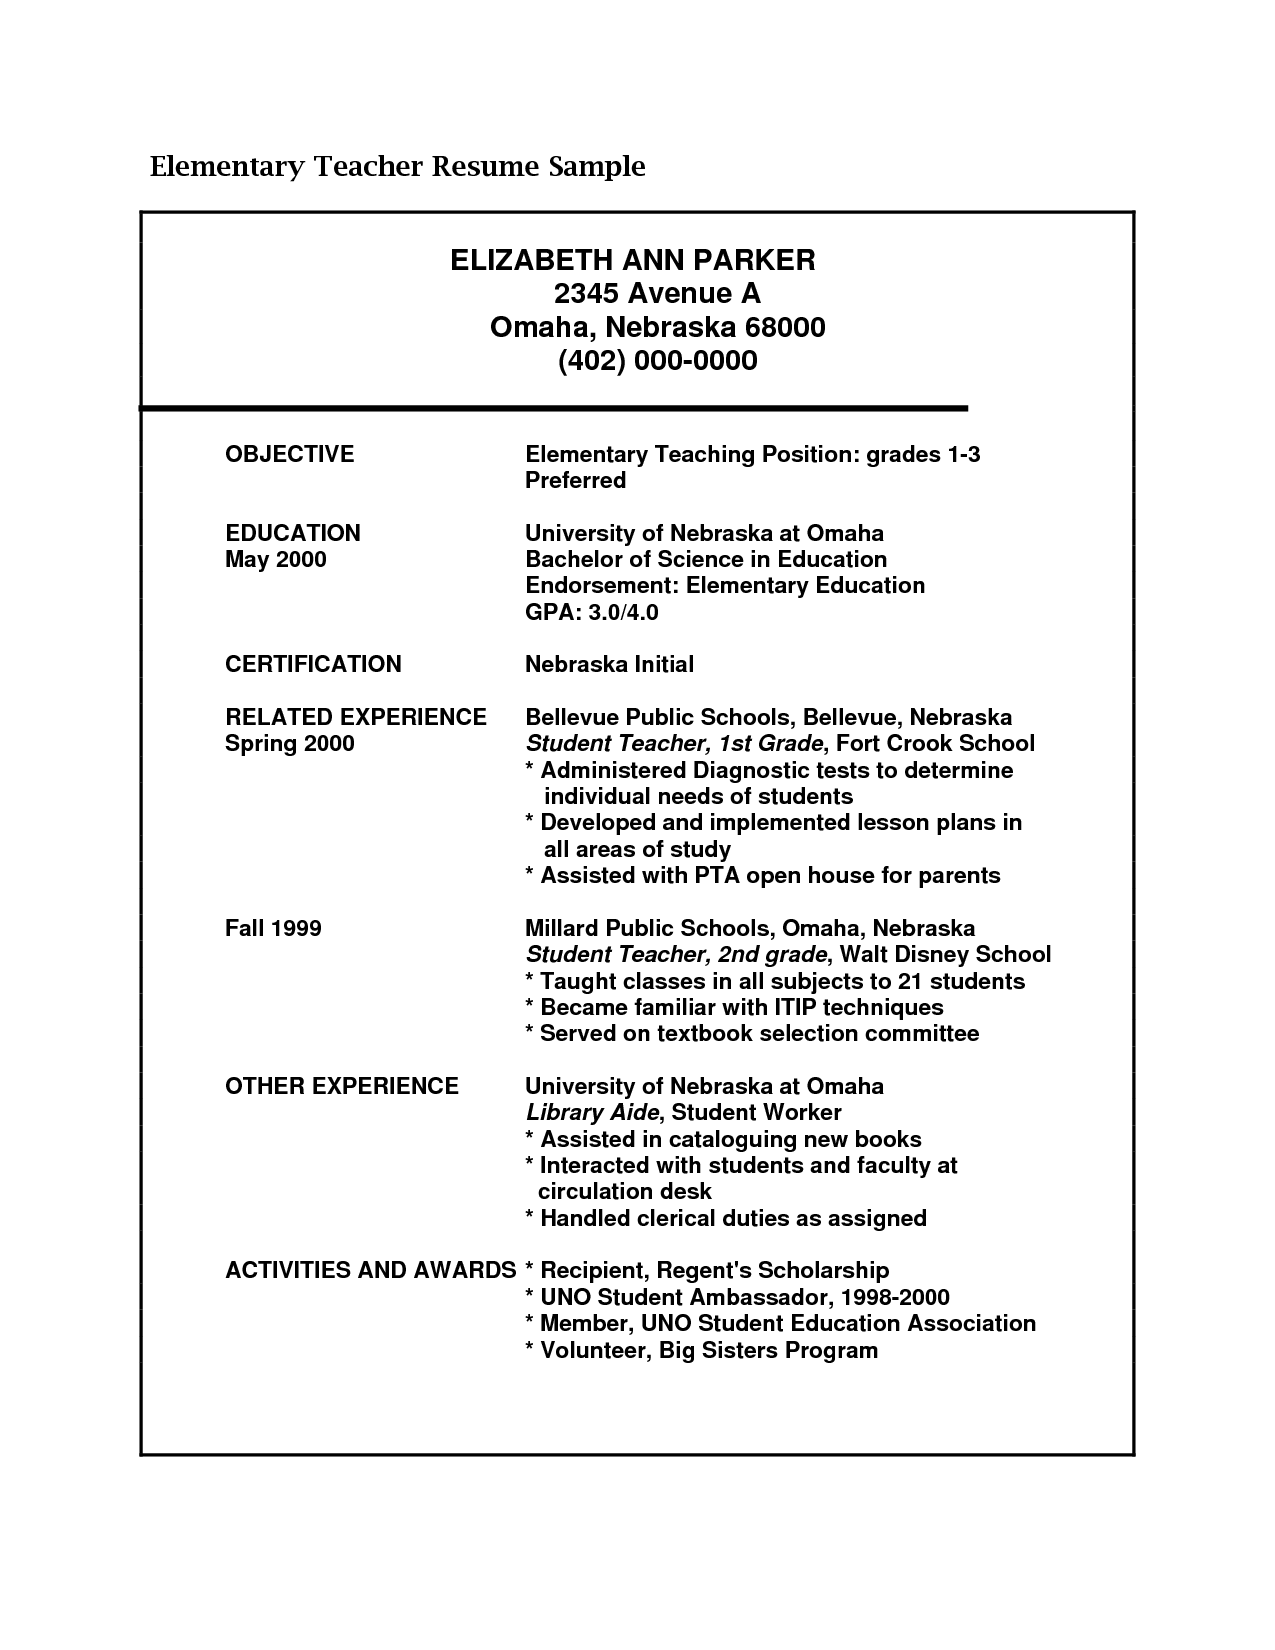 career objective examples for resumes Preschool Teacher Resume Objective  Examples - Best Resume Collection